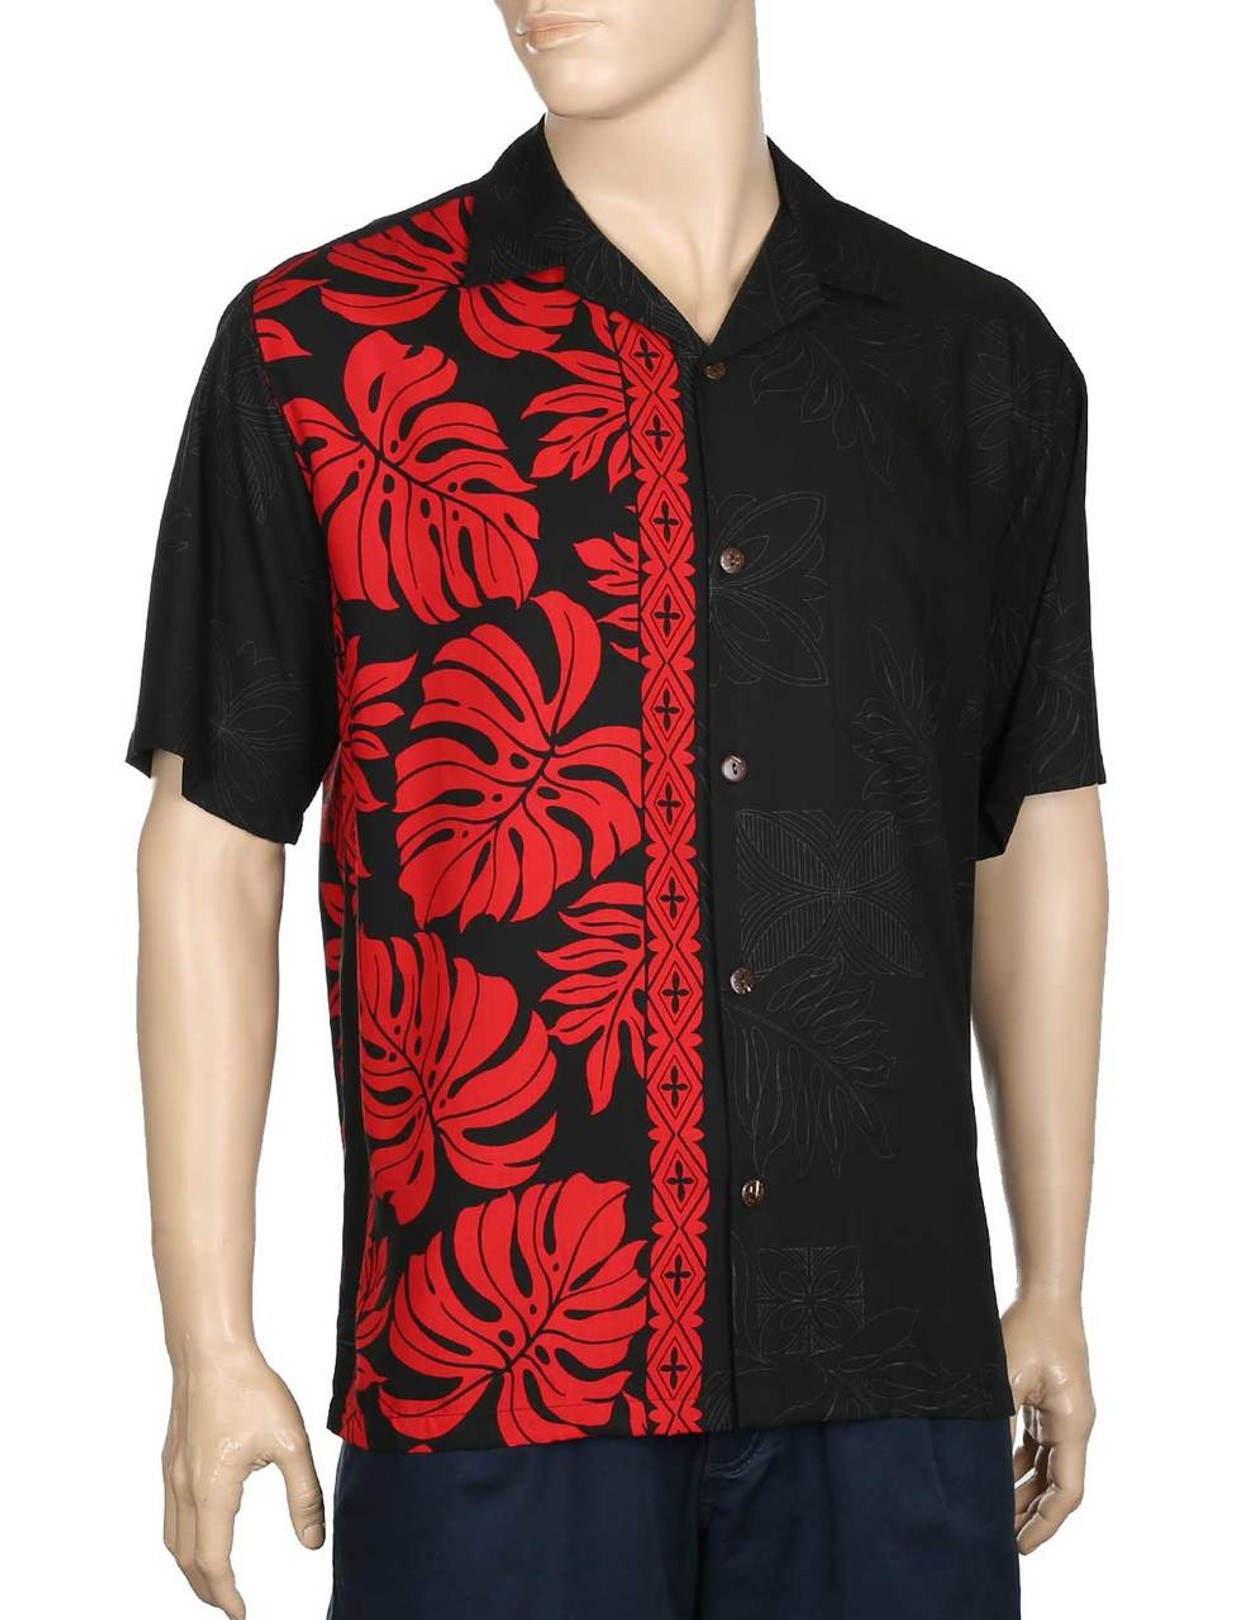 3c741dd7 Price Kuhio Premium Aloha Shirt Side Band 100% Rayon Fabric Open Pointed  Folded Collar Genuine